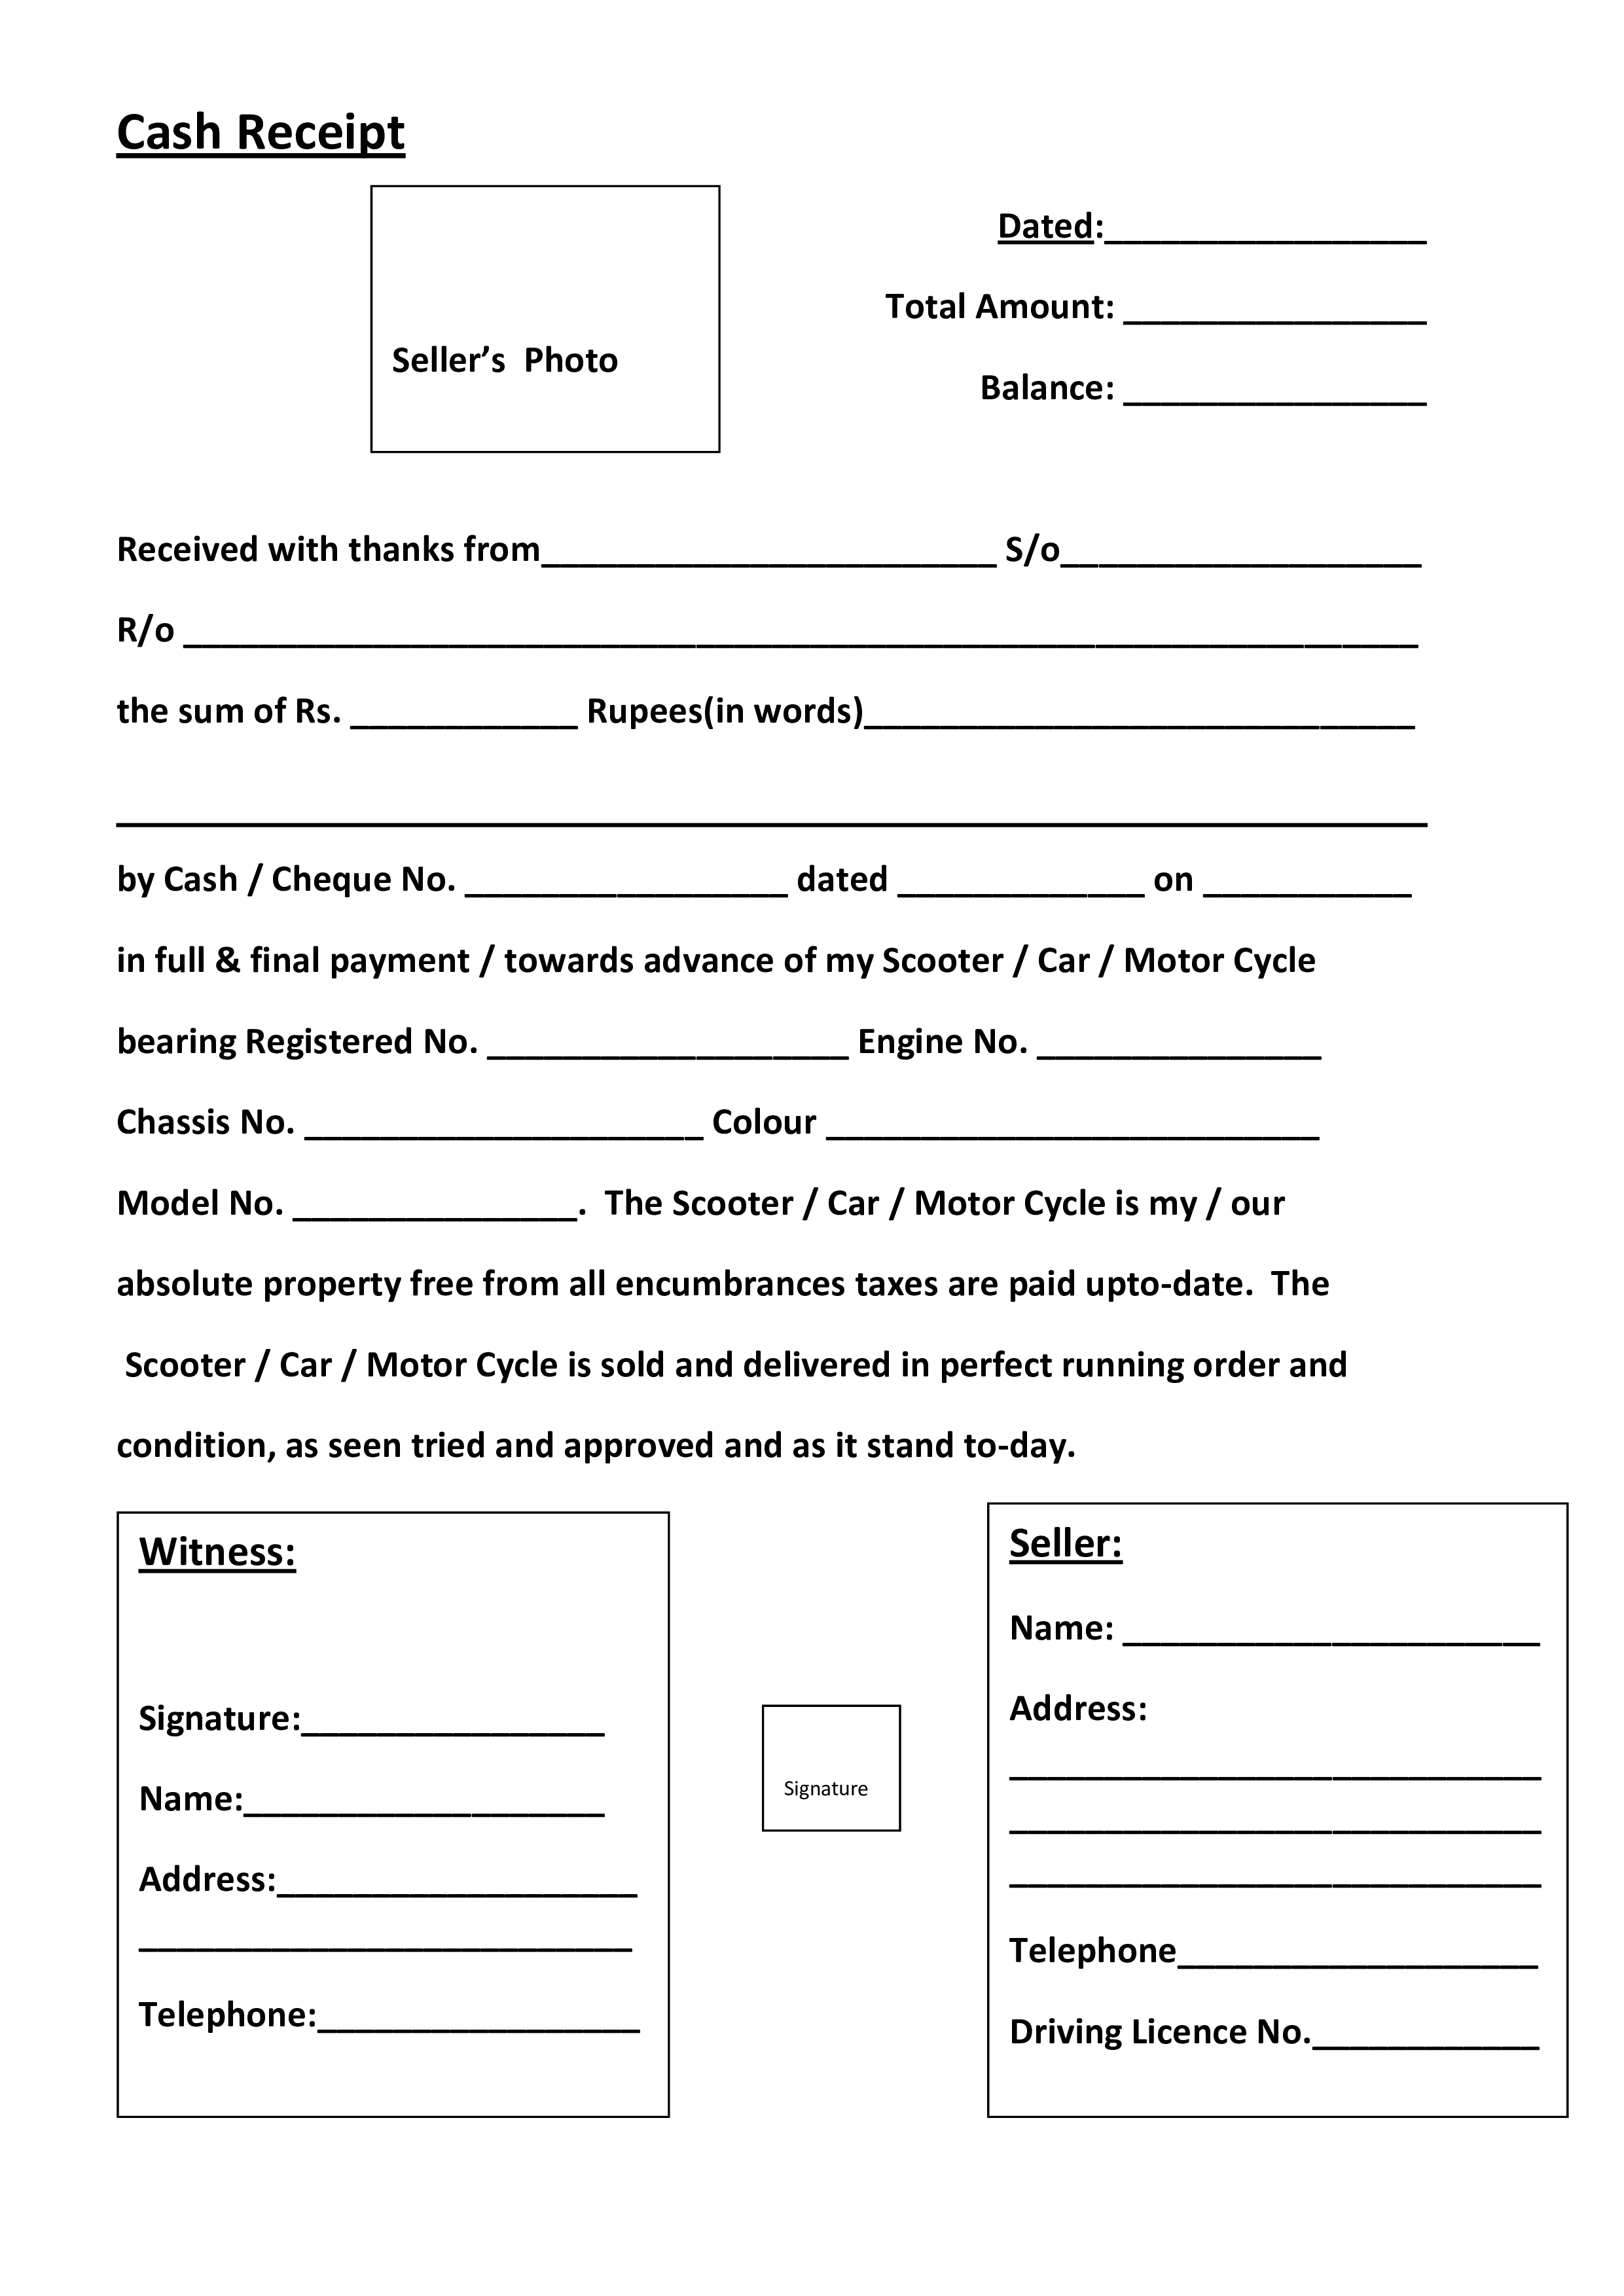 Free Blank Cash Receipt Templates At Allbusinesstemplates